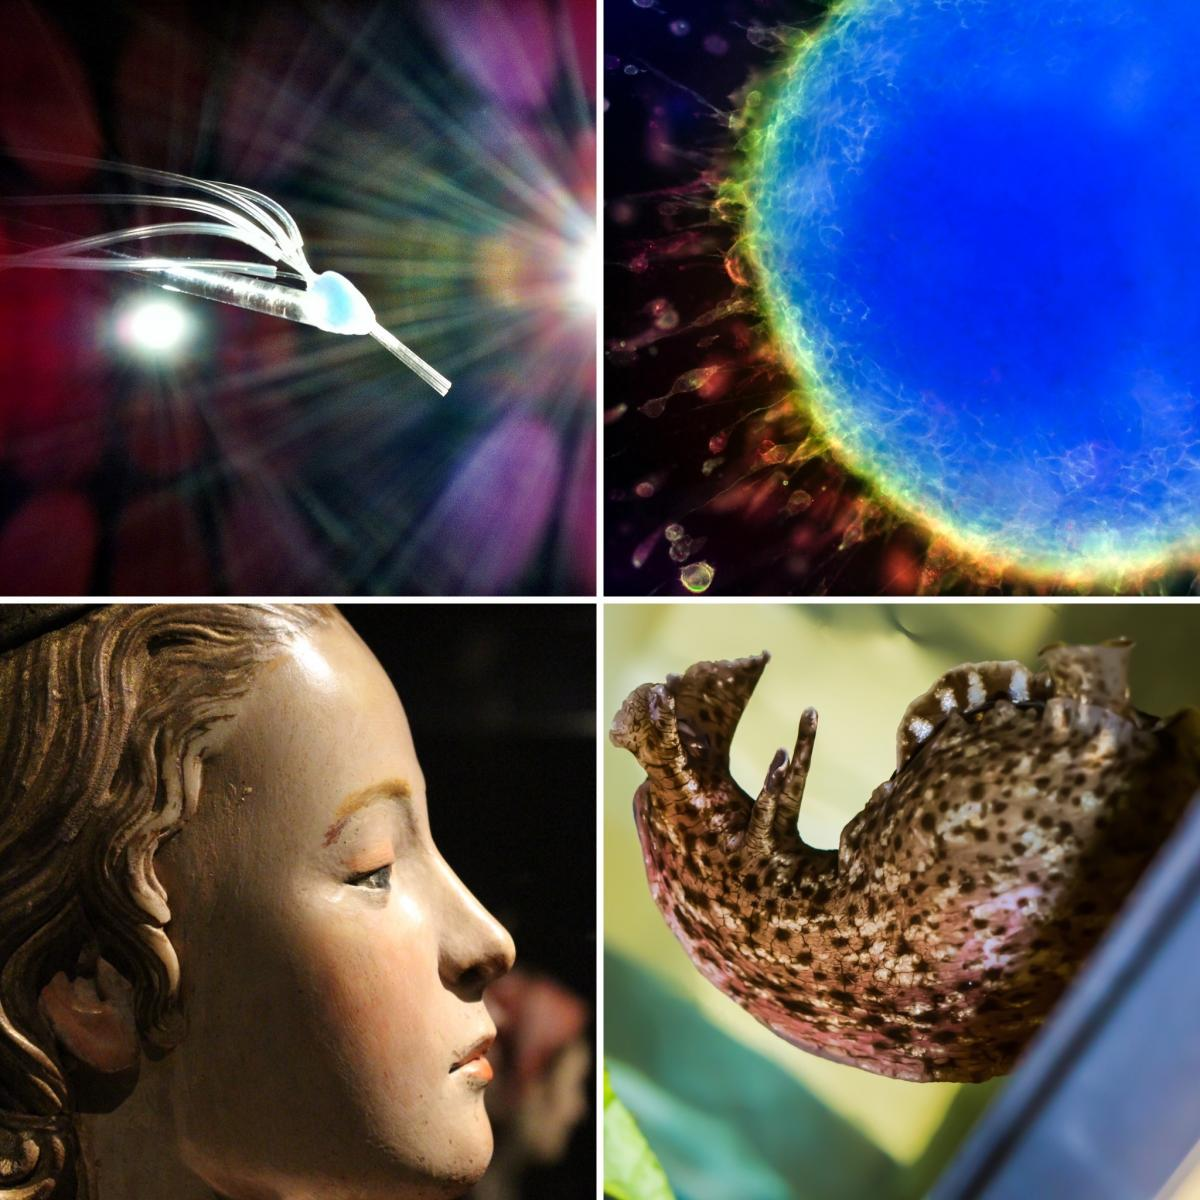 [4 winning images from the 2015 - 2016 Art of Research photo contest]